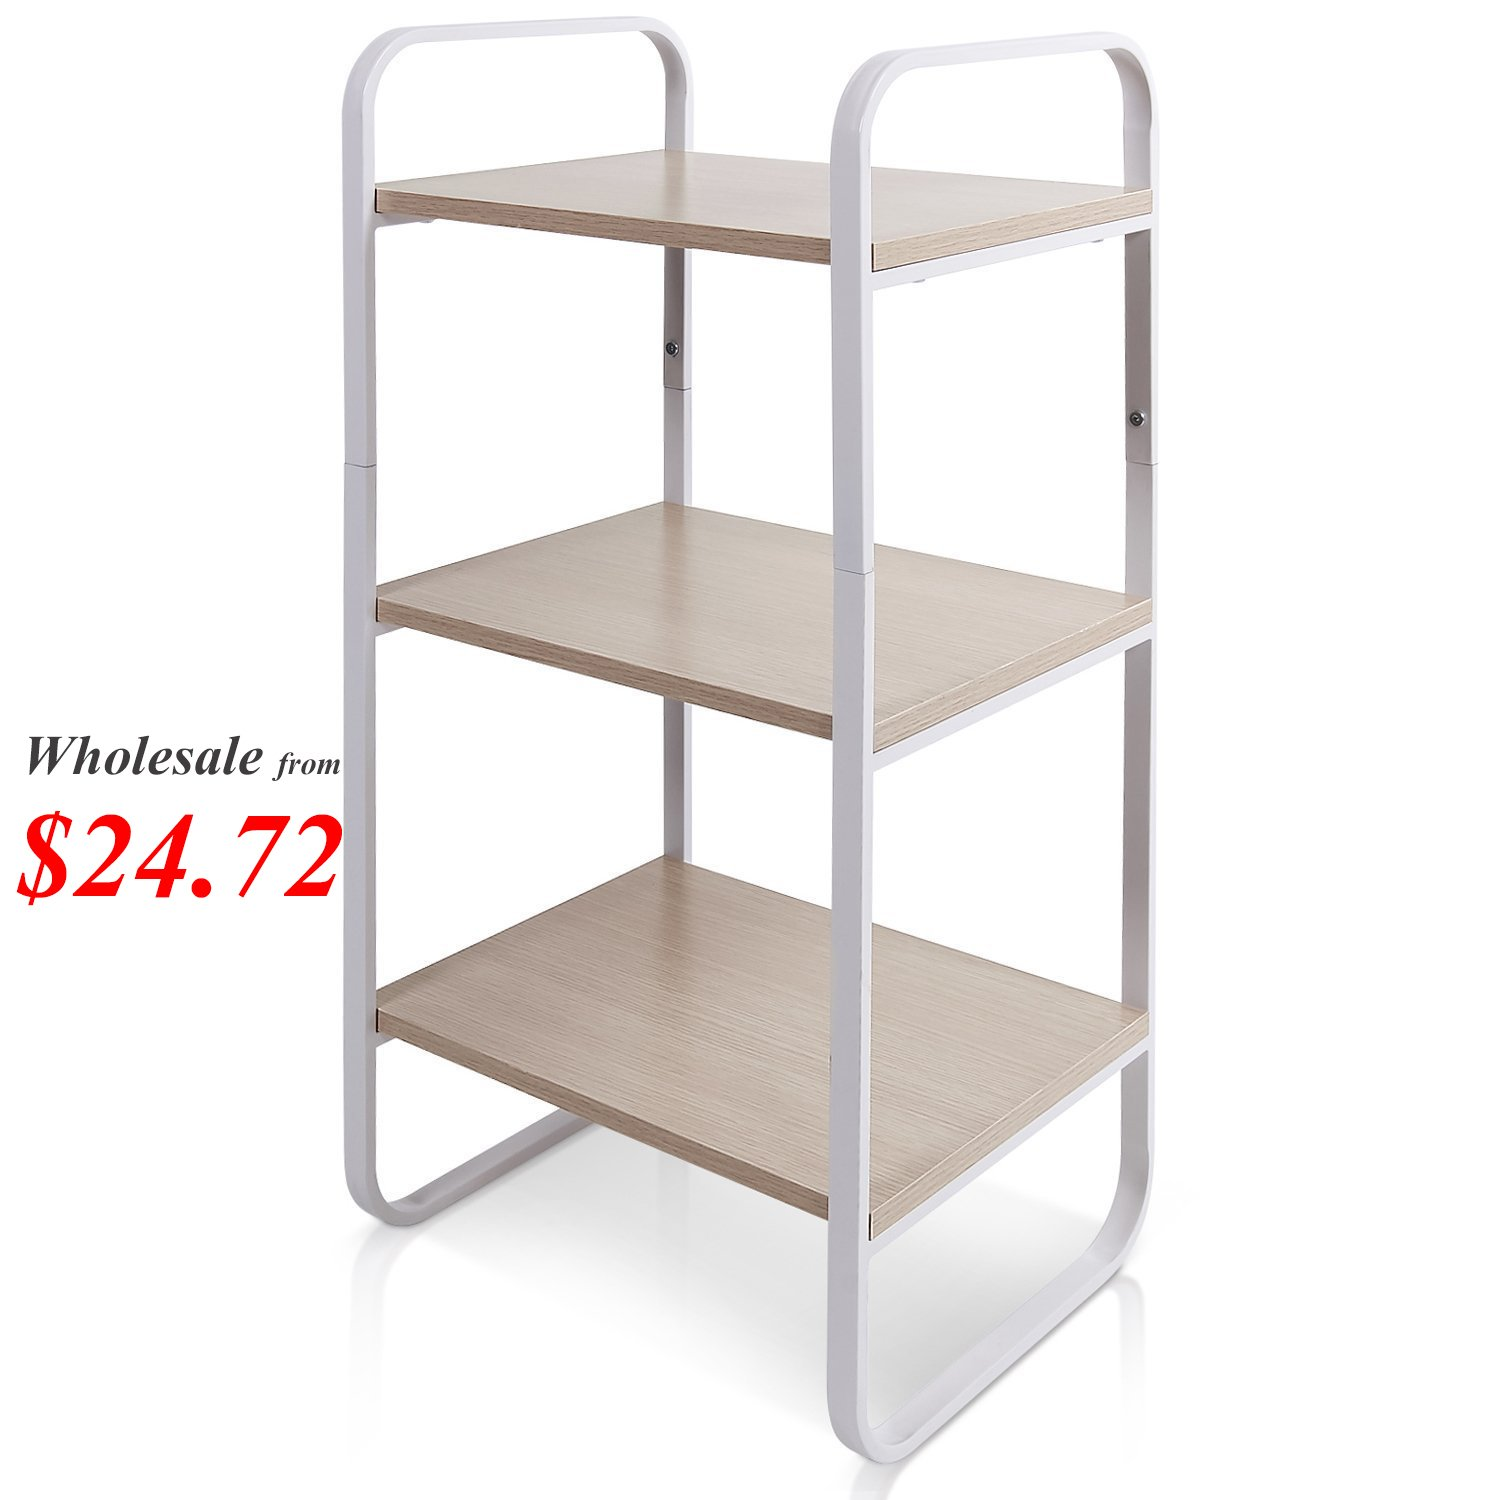 Lifewit 3-Tier Storage Rack